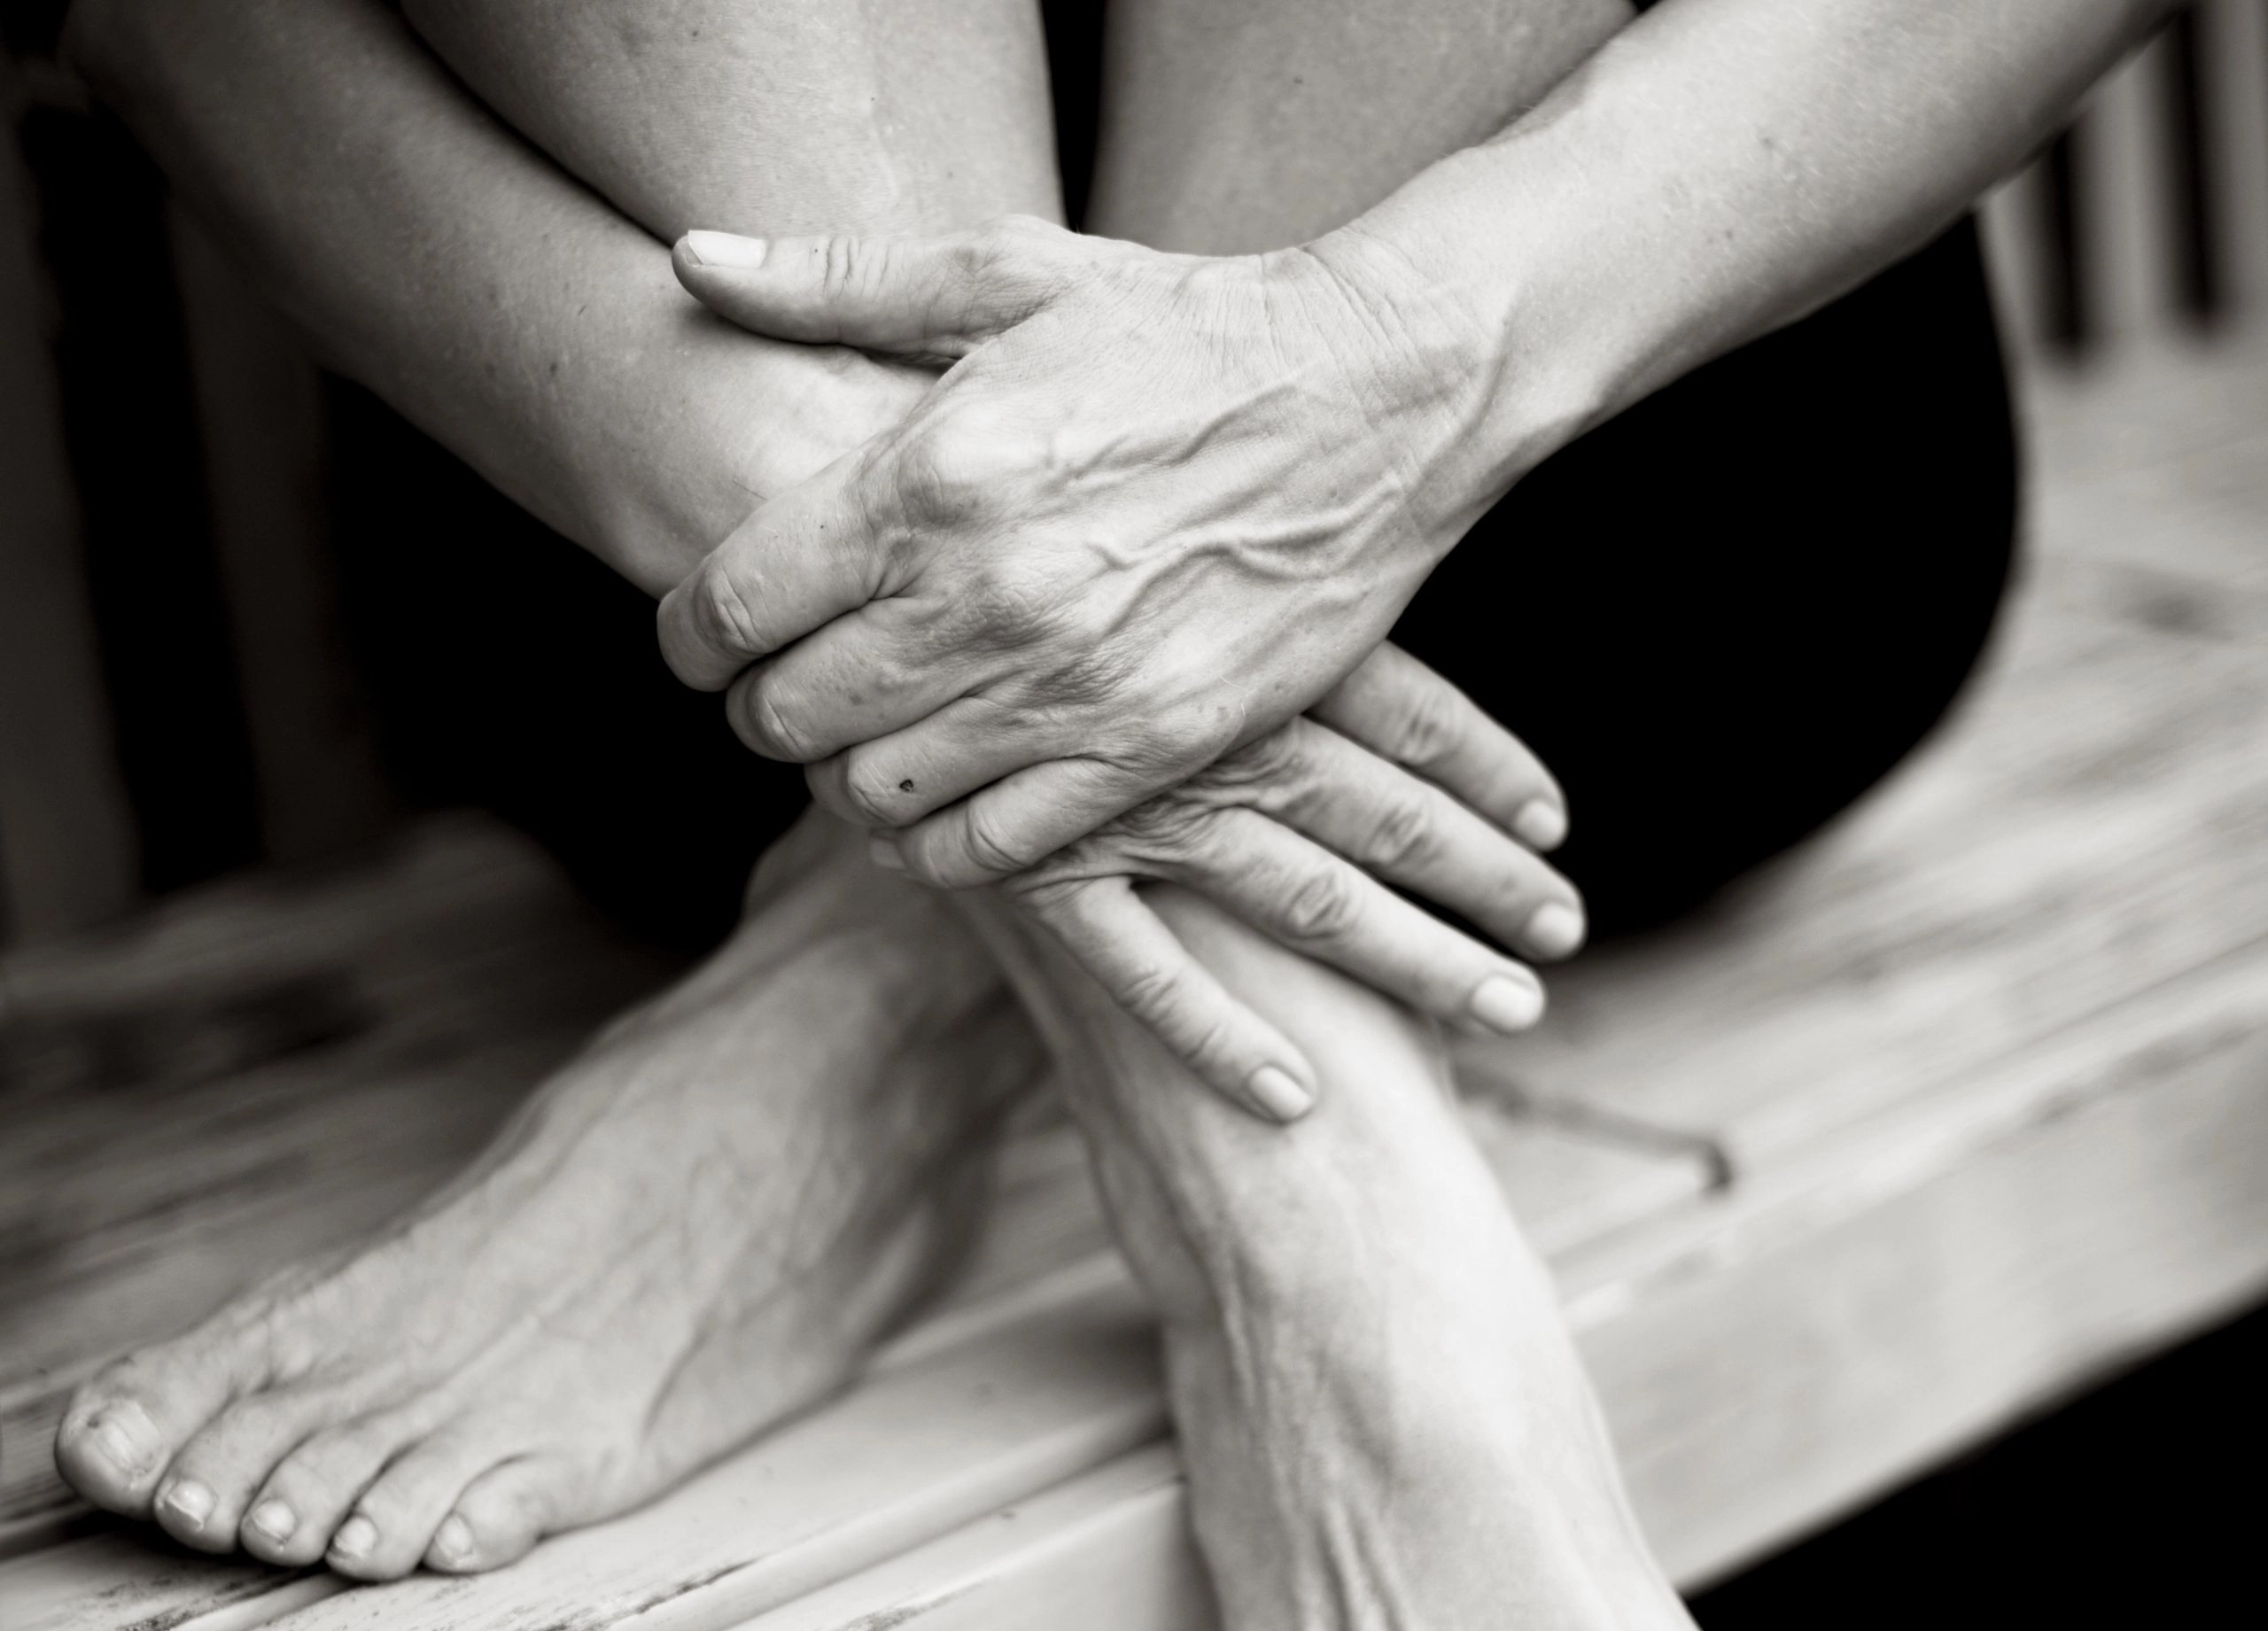 black and white close up of feet and hands